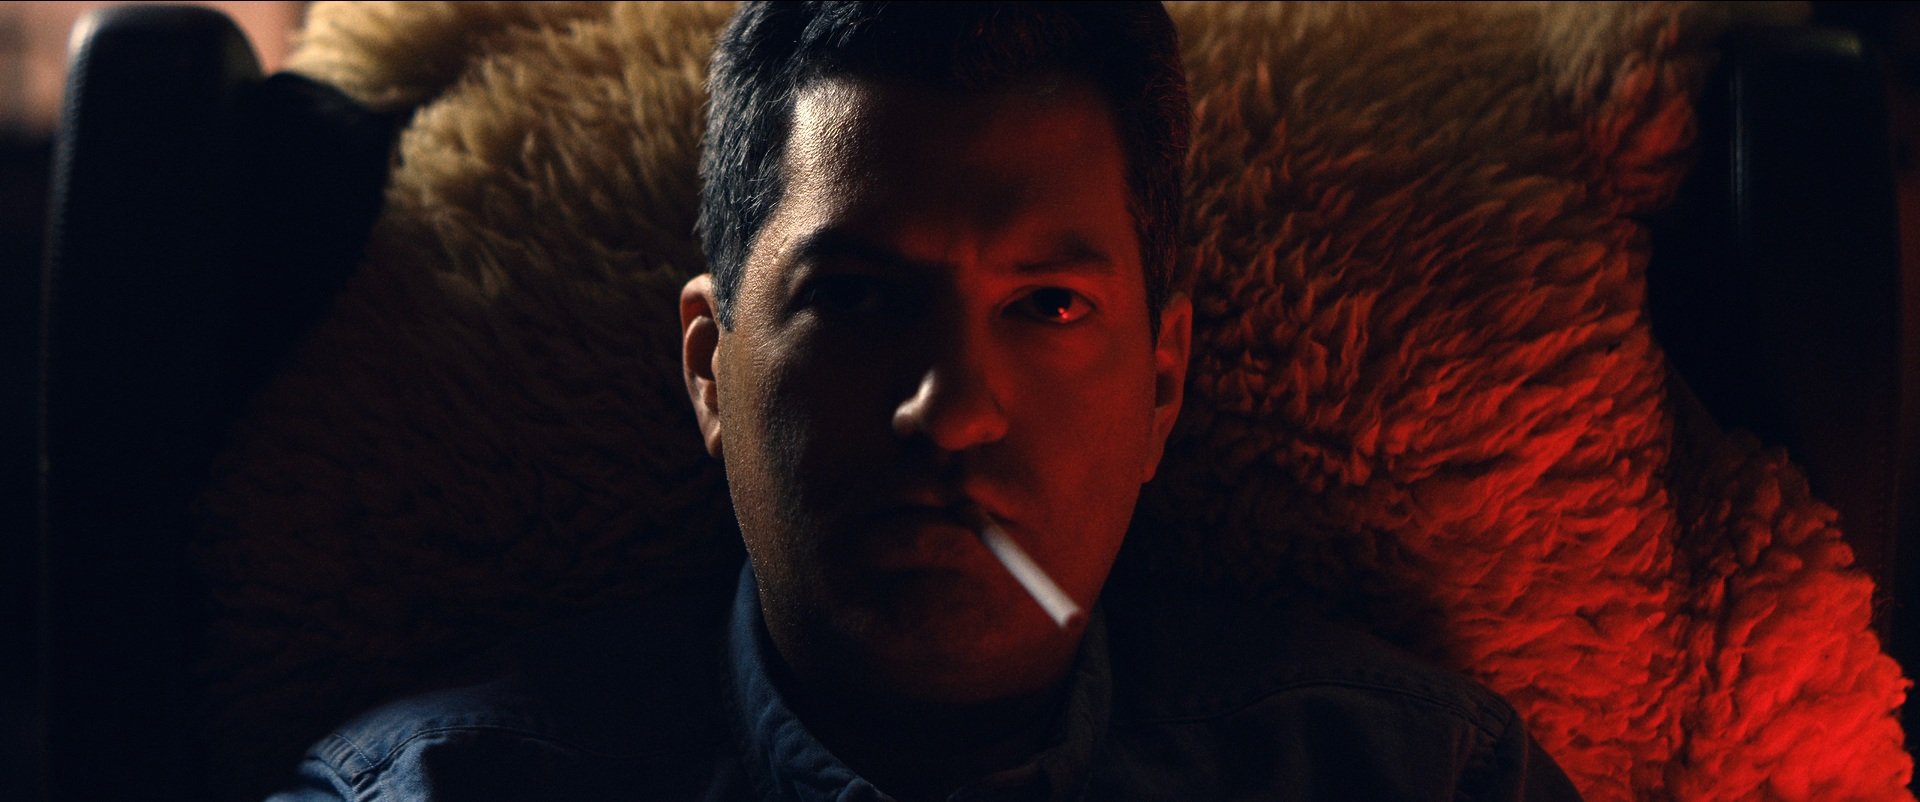 Alfredo Narciso in Swing; Written by Sung Rno; Cinematographer - Ramsey Fendall; Director - Andrew Pang